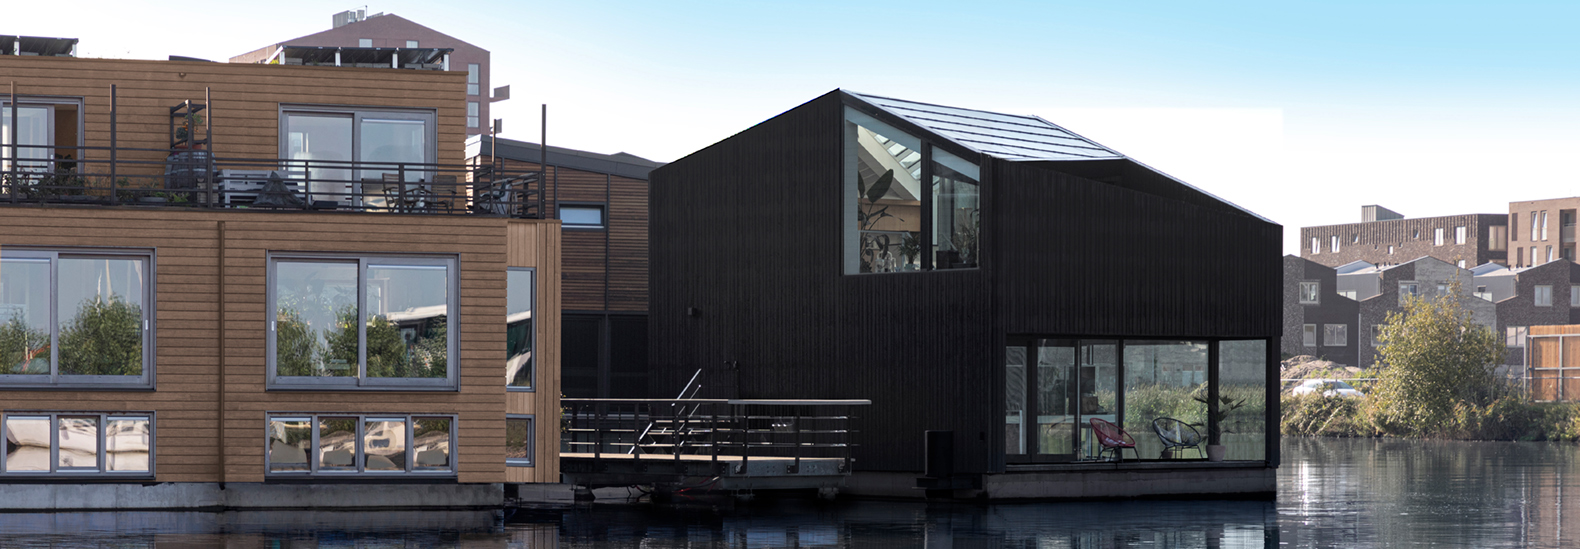 This home floats in a self-sufficient Amsterdam neighborhood